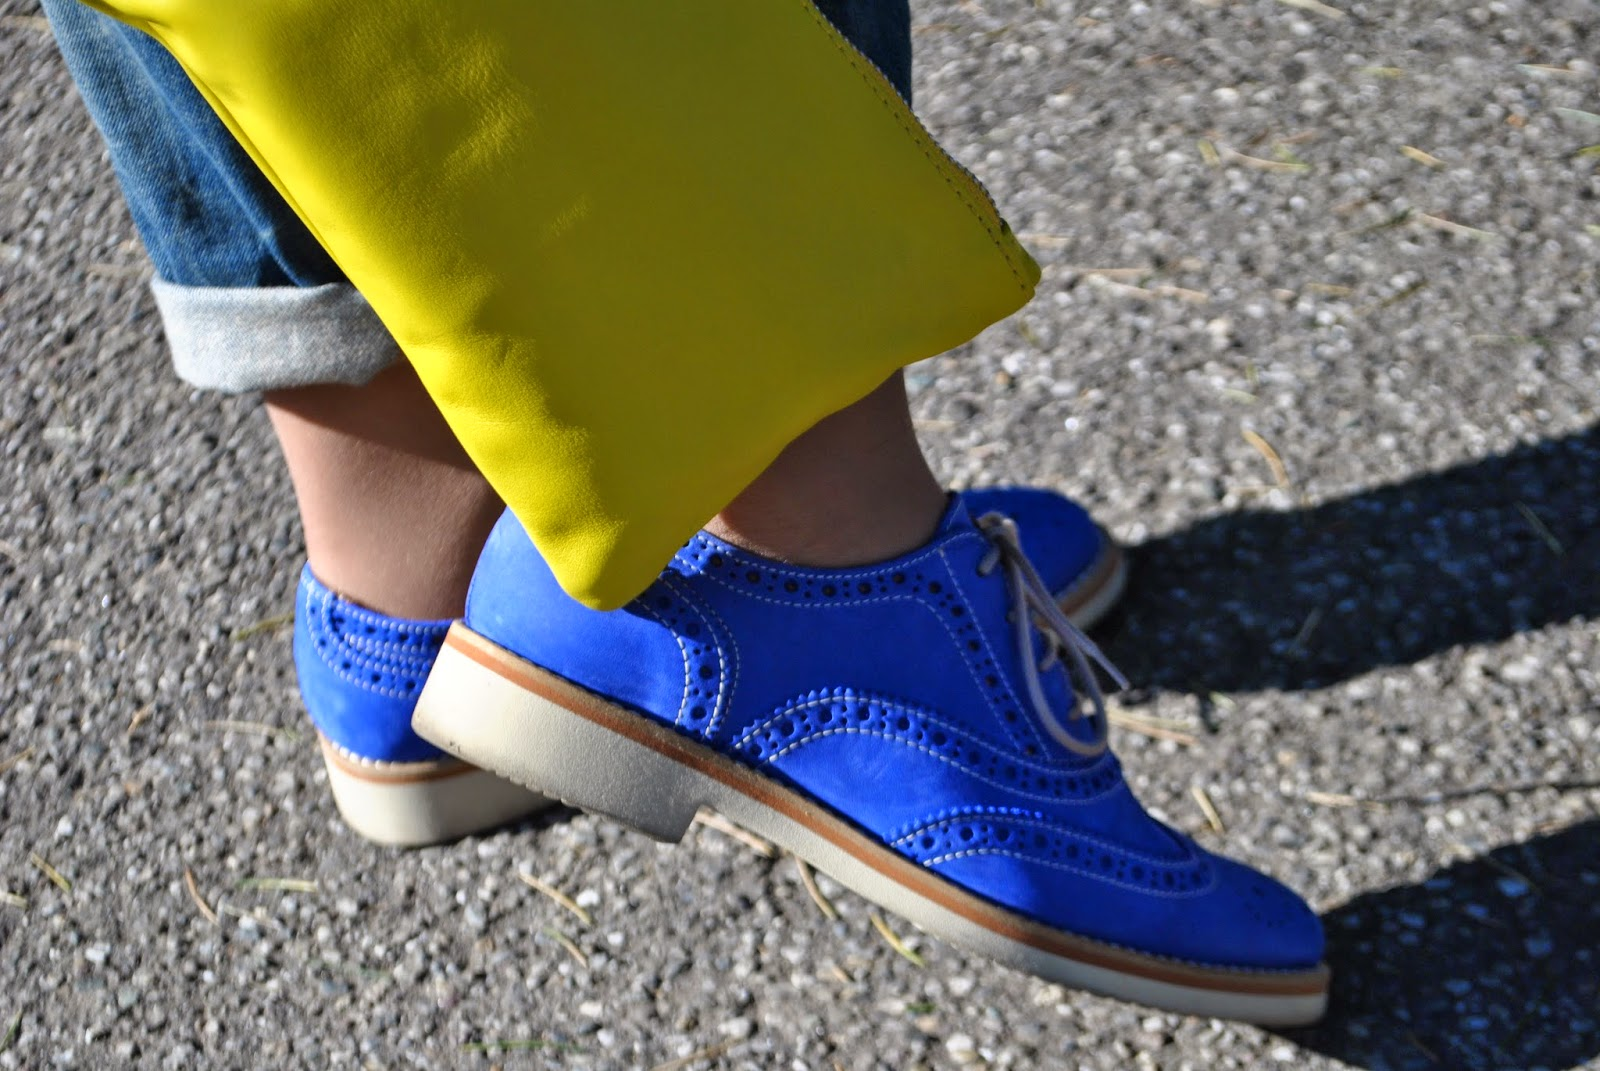 outfit blu outfit giacca blu outfit camicia stampa ciliegie camicia pull&bears outfit stringate maschili mariafelicia magno colorblock by felym mariafelicia magno fashion blogger outfit giacca blu come abbinare il blu outfit borsa gialla outfit scarpe blu come abbinare il giallo abbinamenti giallo blu abbinamenti blu outfit aprile 2015 outfit  outfit primaverili casual outfit donna primaverili outfit casual donna spring outfits outfit blue how to wear blue blue blazer yellow bag fashion bloggers italy girl blonde hair blonde girls braids collana pietre blu majique fornarina massimiliano incas